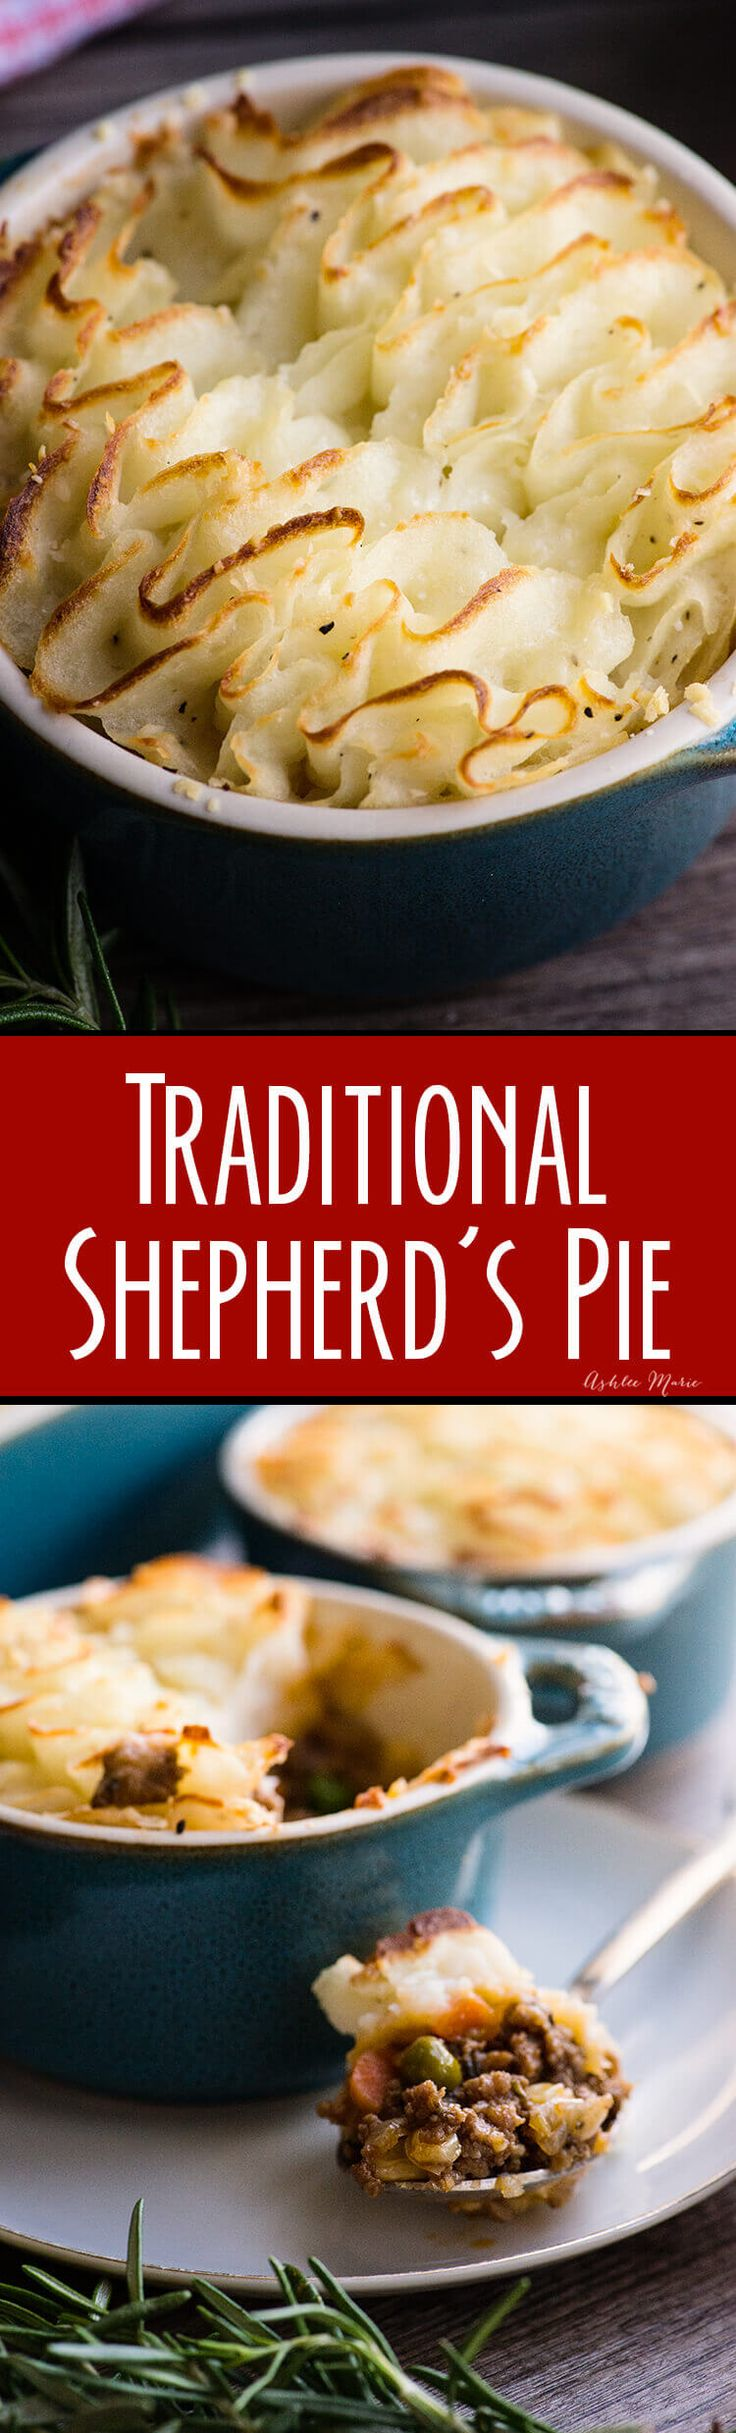 this traditional shepherds pie recipe is easy and delicious - the meat mixture is full of flavor and the mash is creamy and flavorful